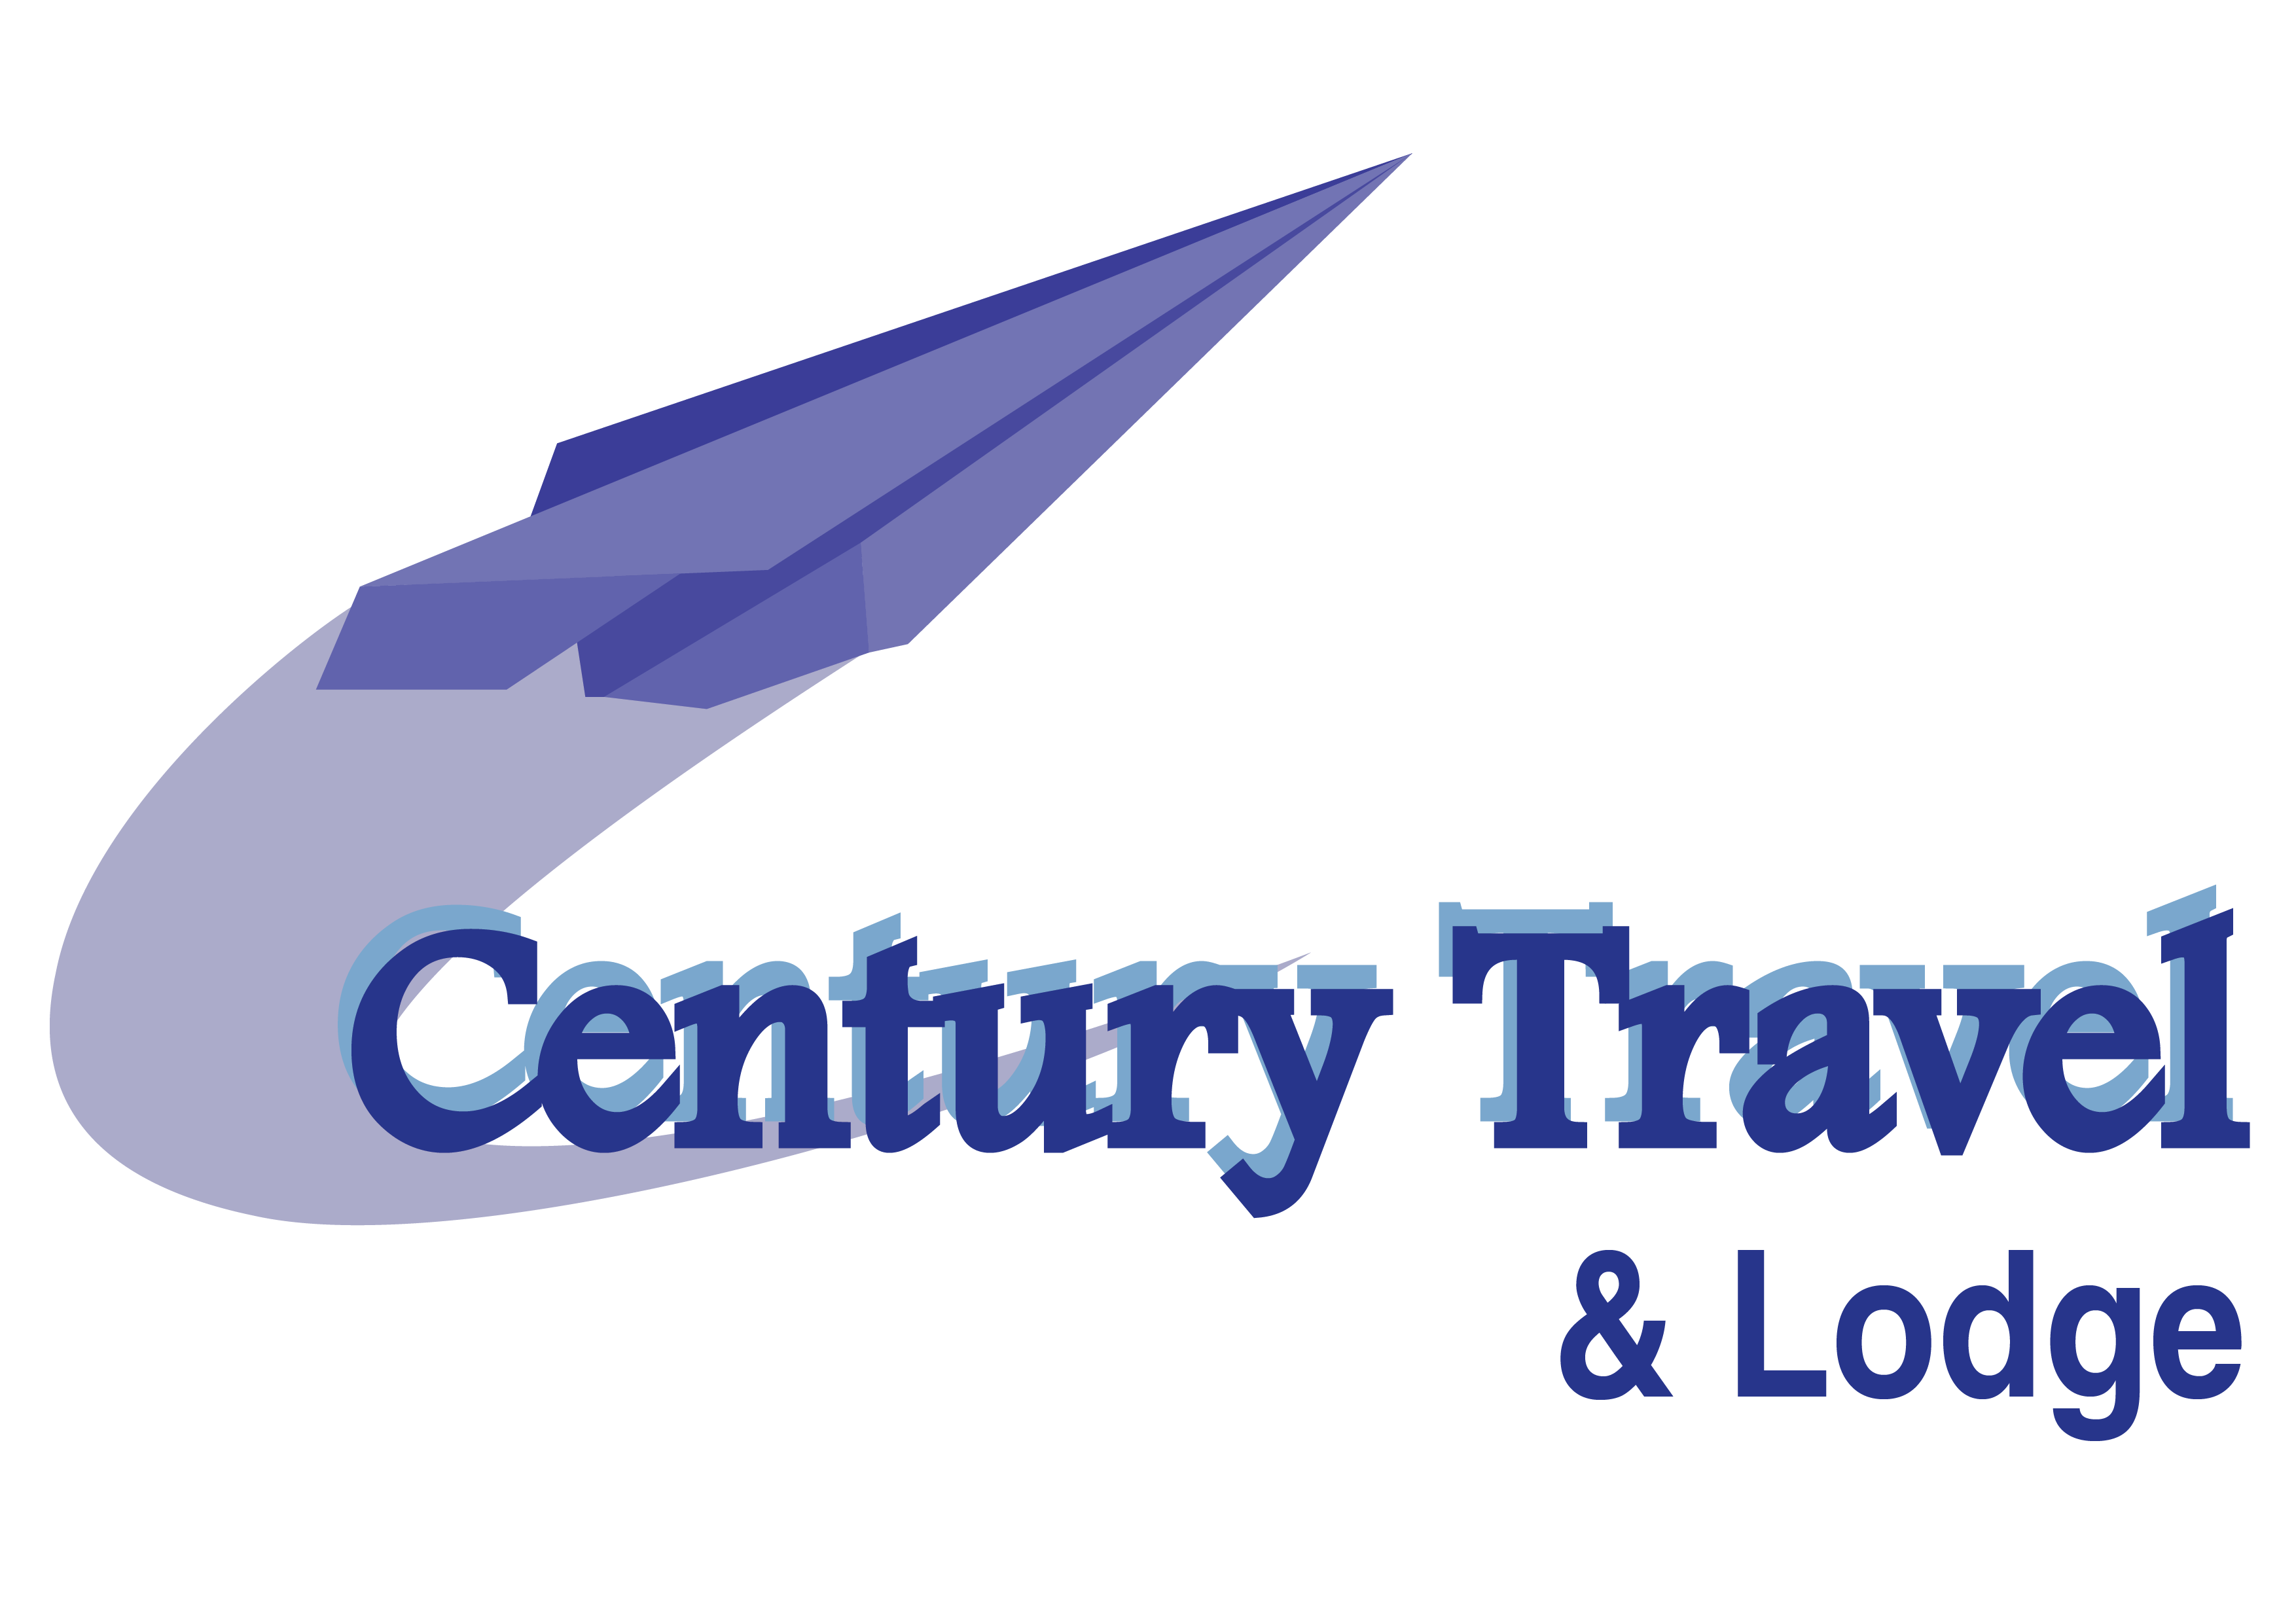 Century Travel & Lodge